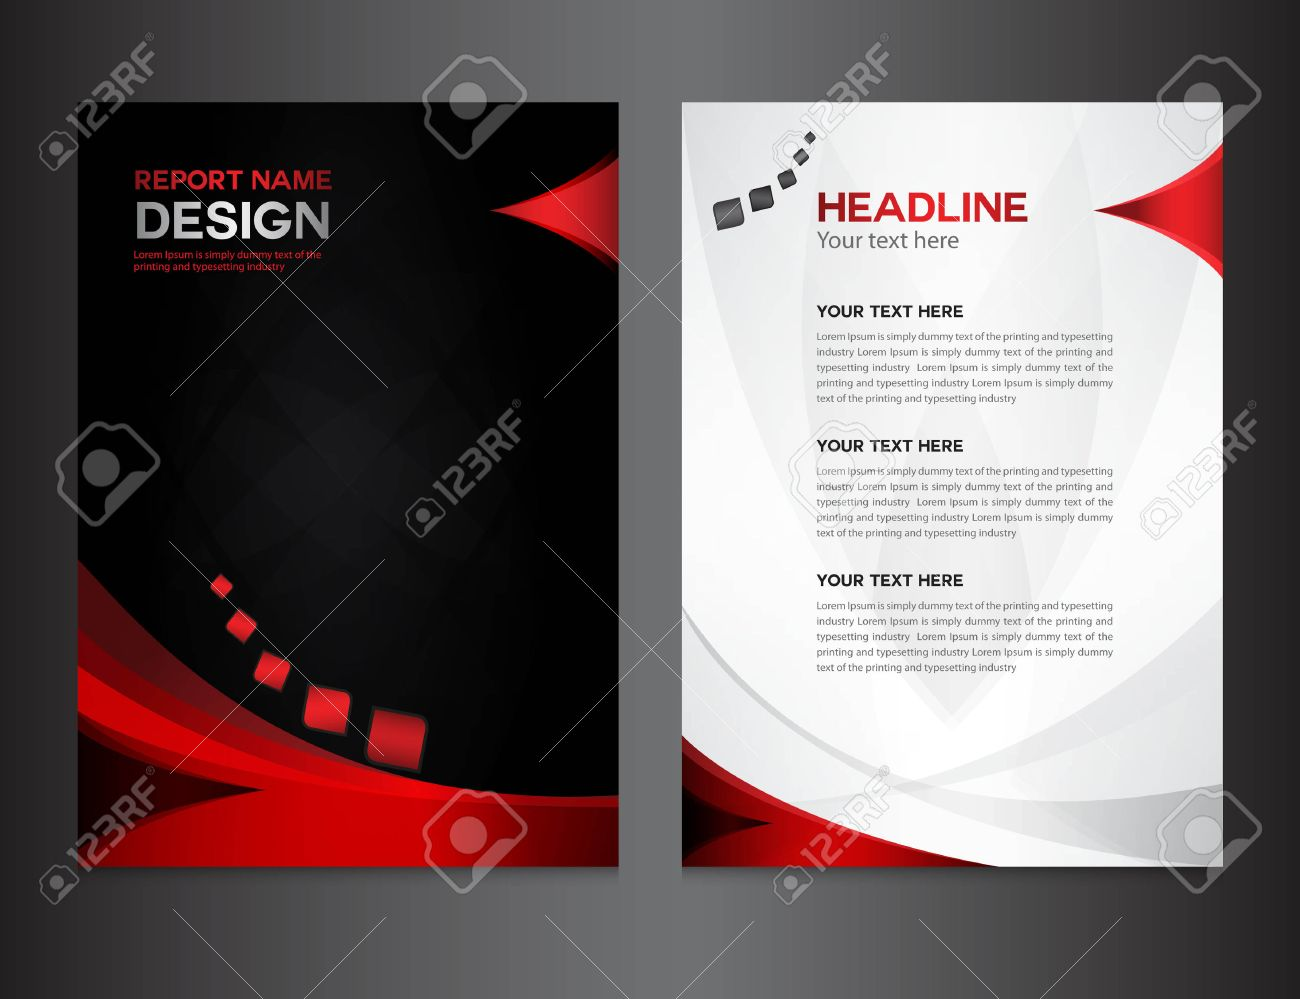 red annual report vector illustration cover design brochure vector red annual report vector illustration cover design brochure design template design graphic design vector illustration report cover